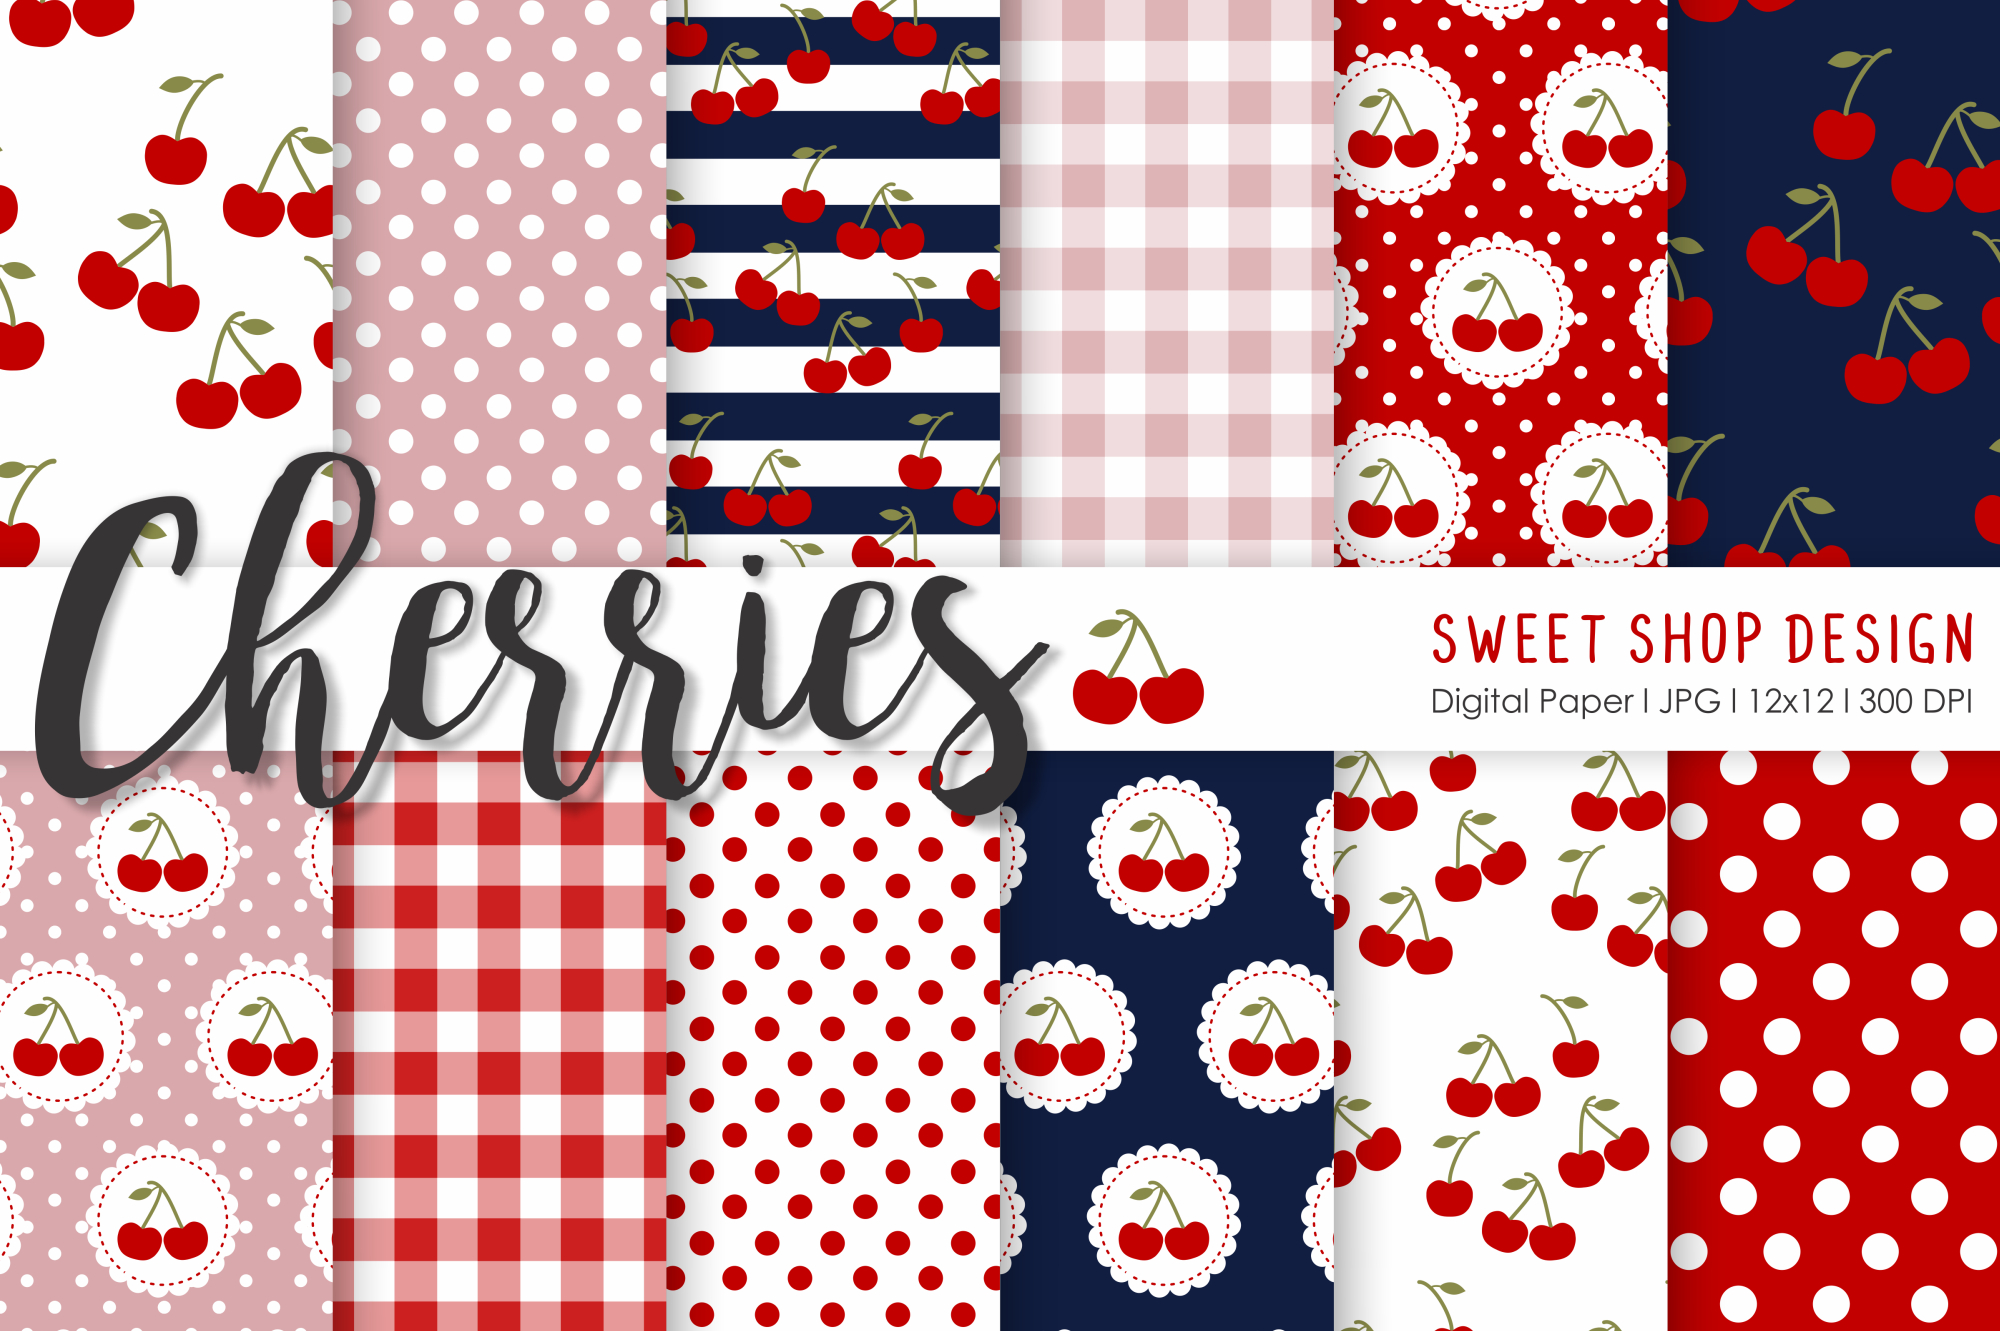 Download Free Digital Paper Cherries Graphic By Sweet Shop Design Creative for Cricut Explore, Silhouette and other cutting machines.